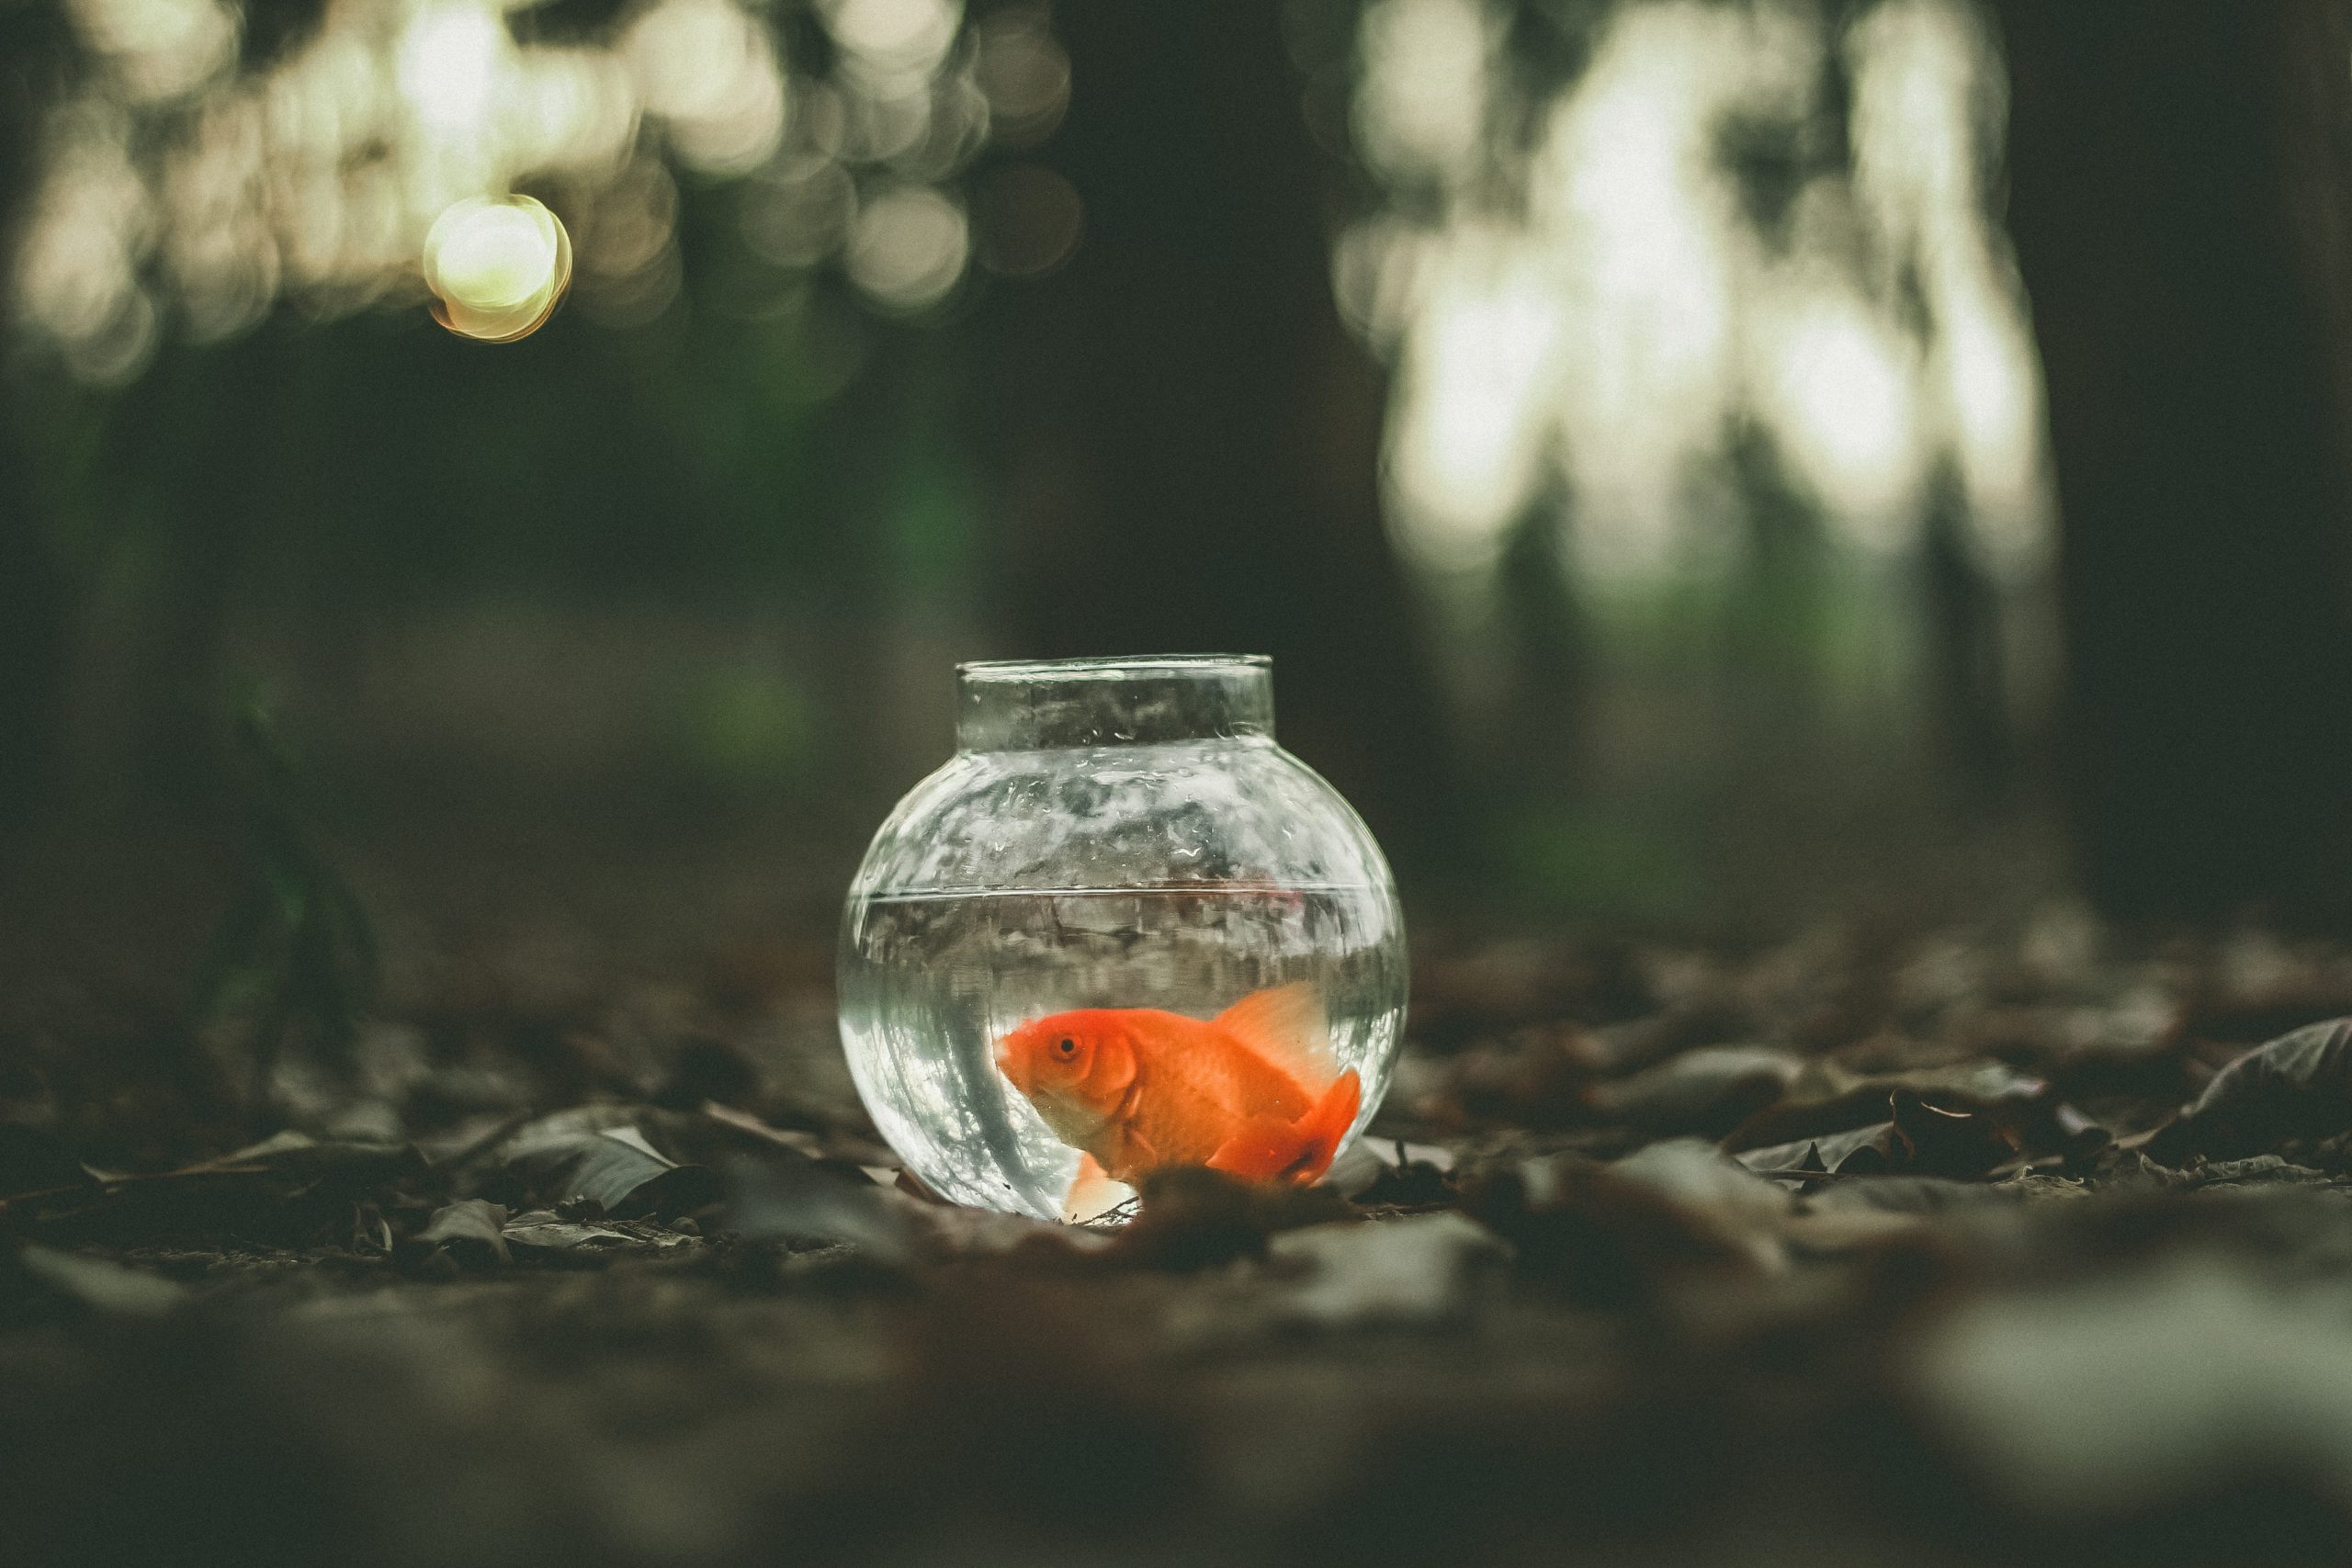 How To Buy An Ideal Fish Bowl